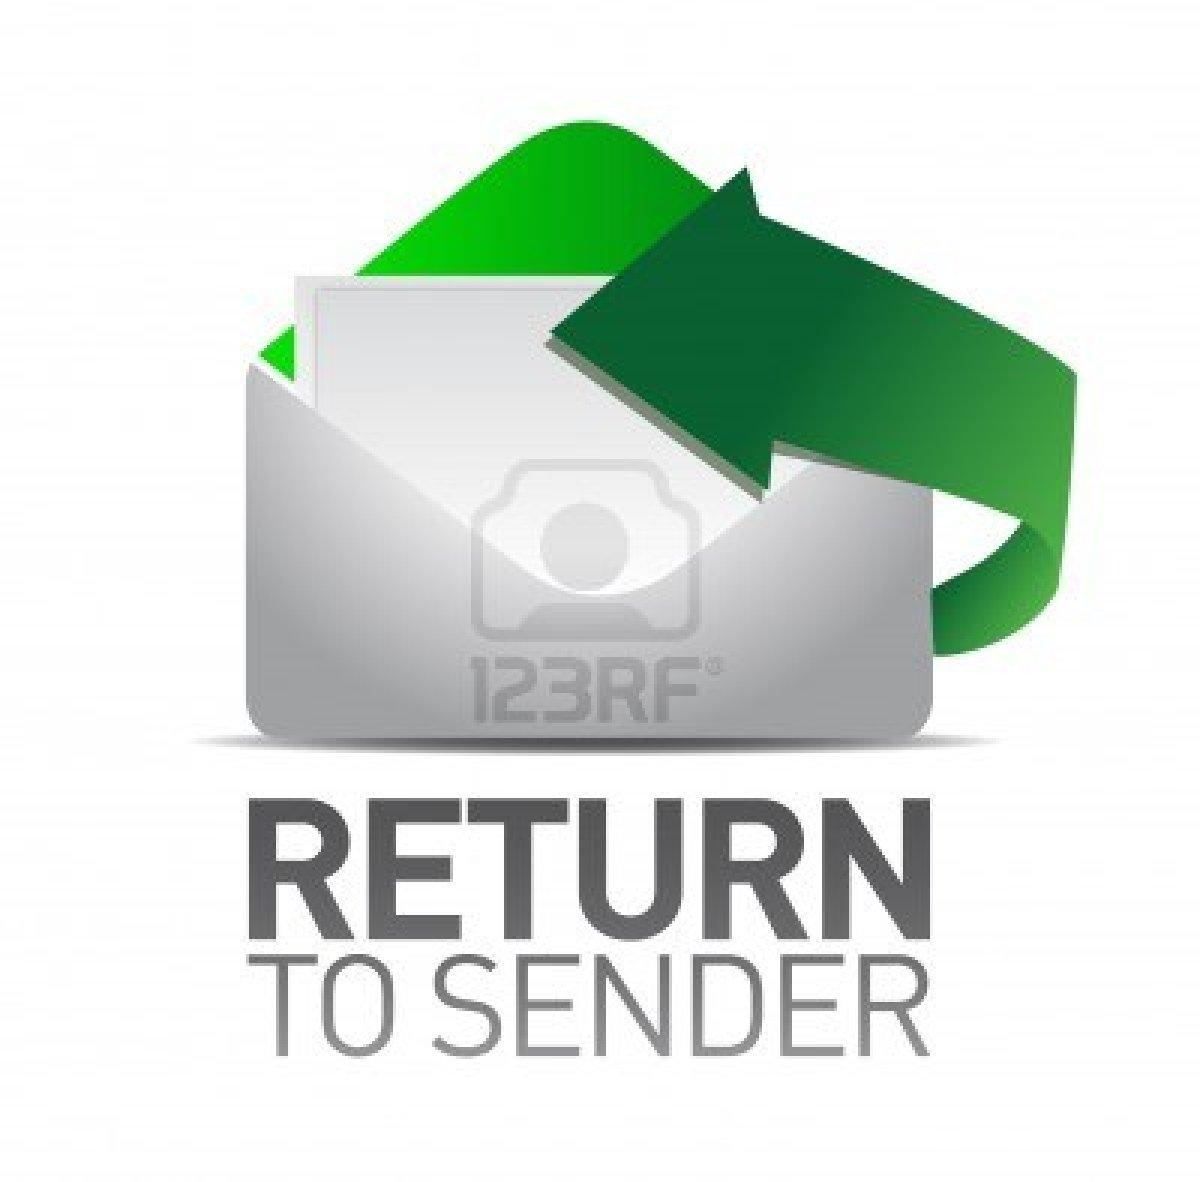 how to return email to sender